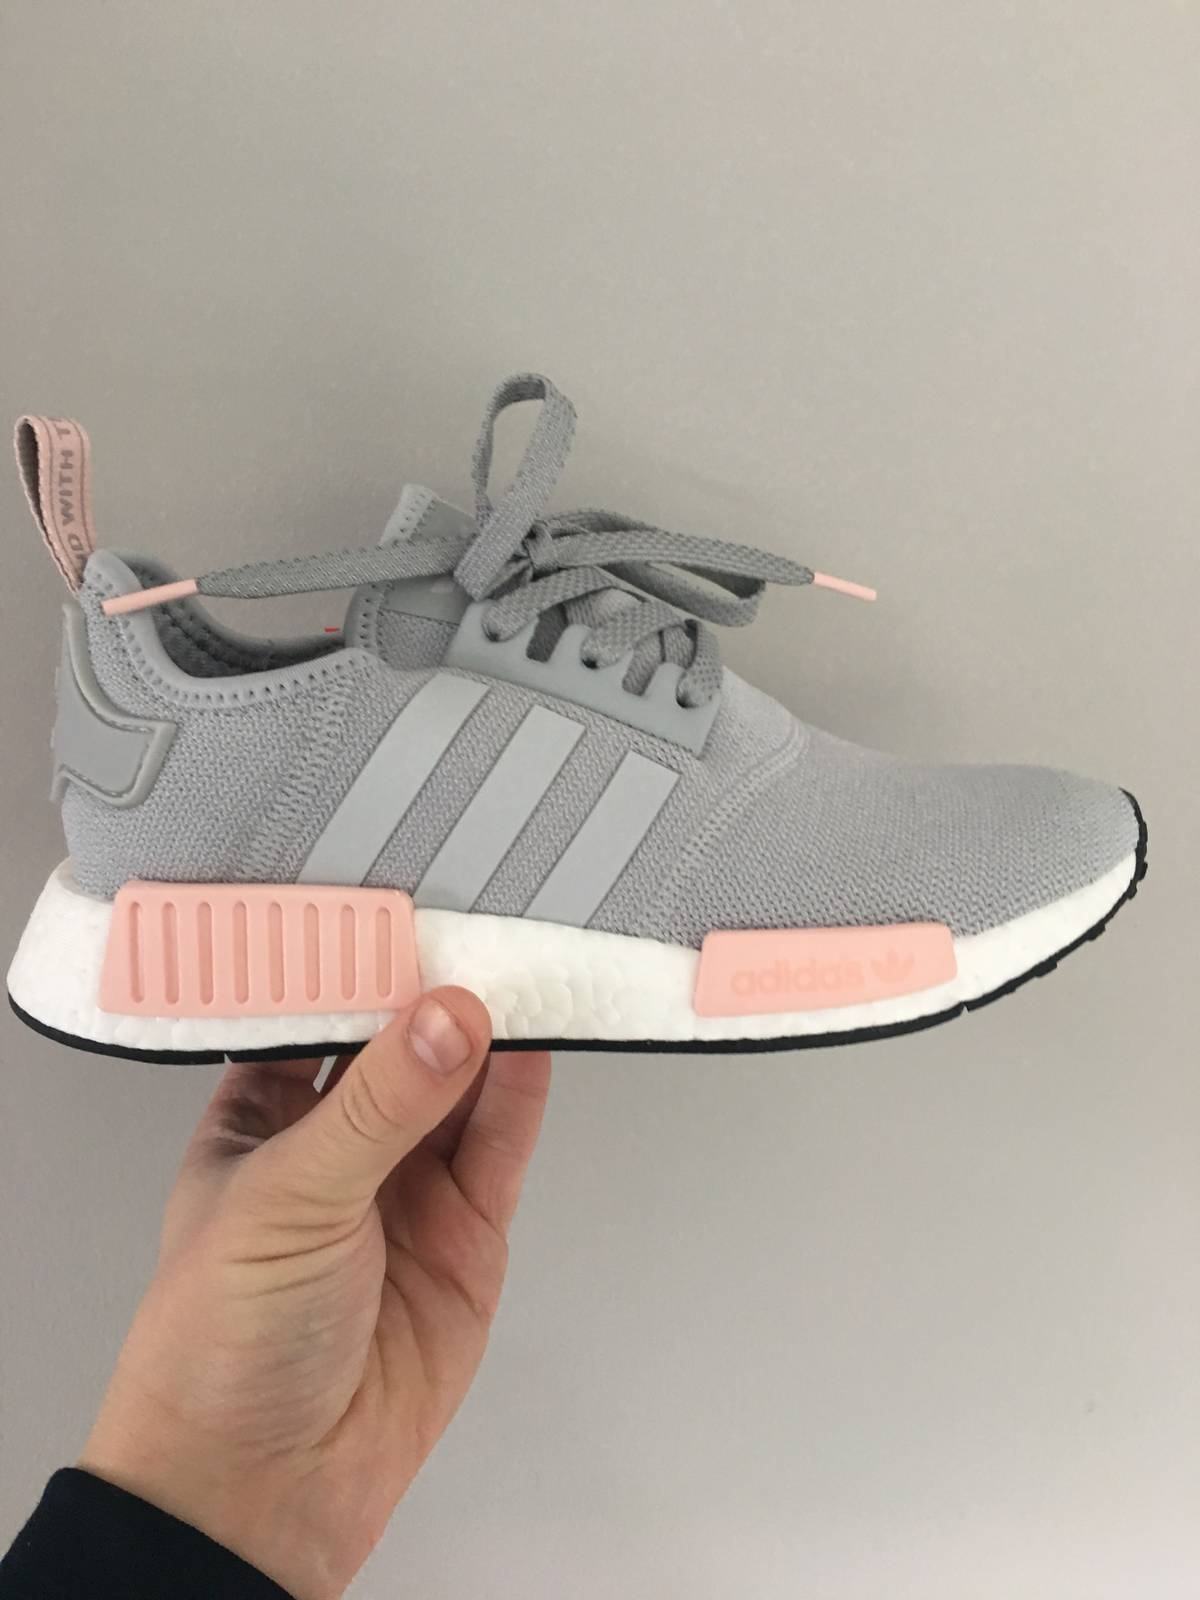 3f9f14be0 switzerland adidas nmd runner grey and pink quilt 35b88 1d1ed